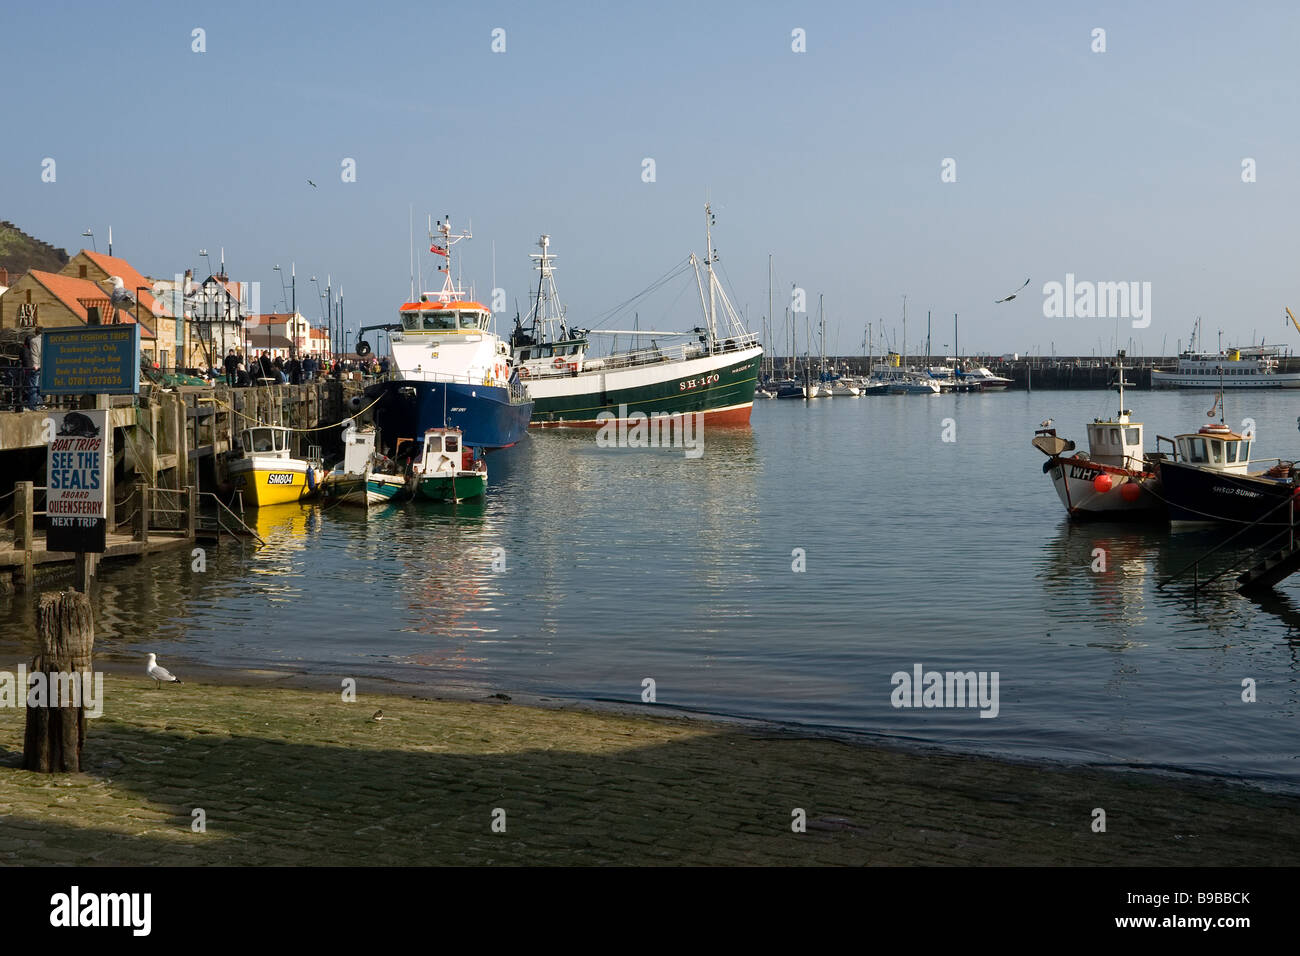 Fishing boats in the harbour at Scarborough North Yorkshire - Stock Image